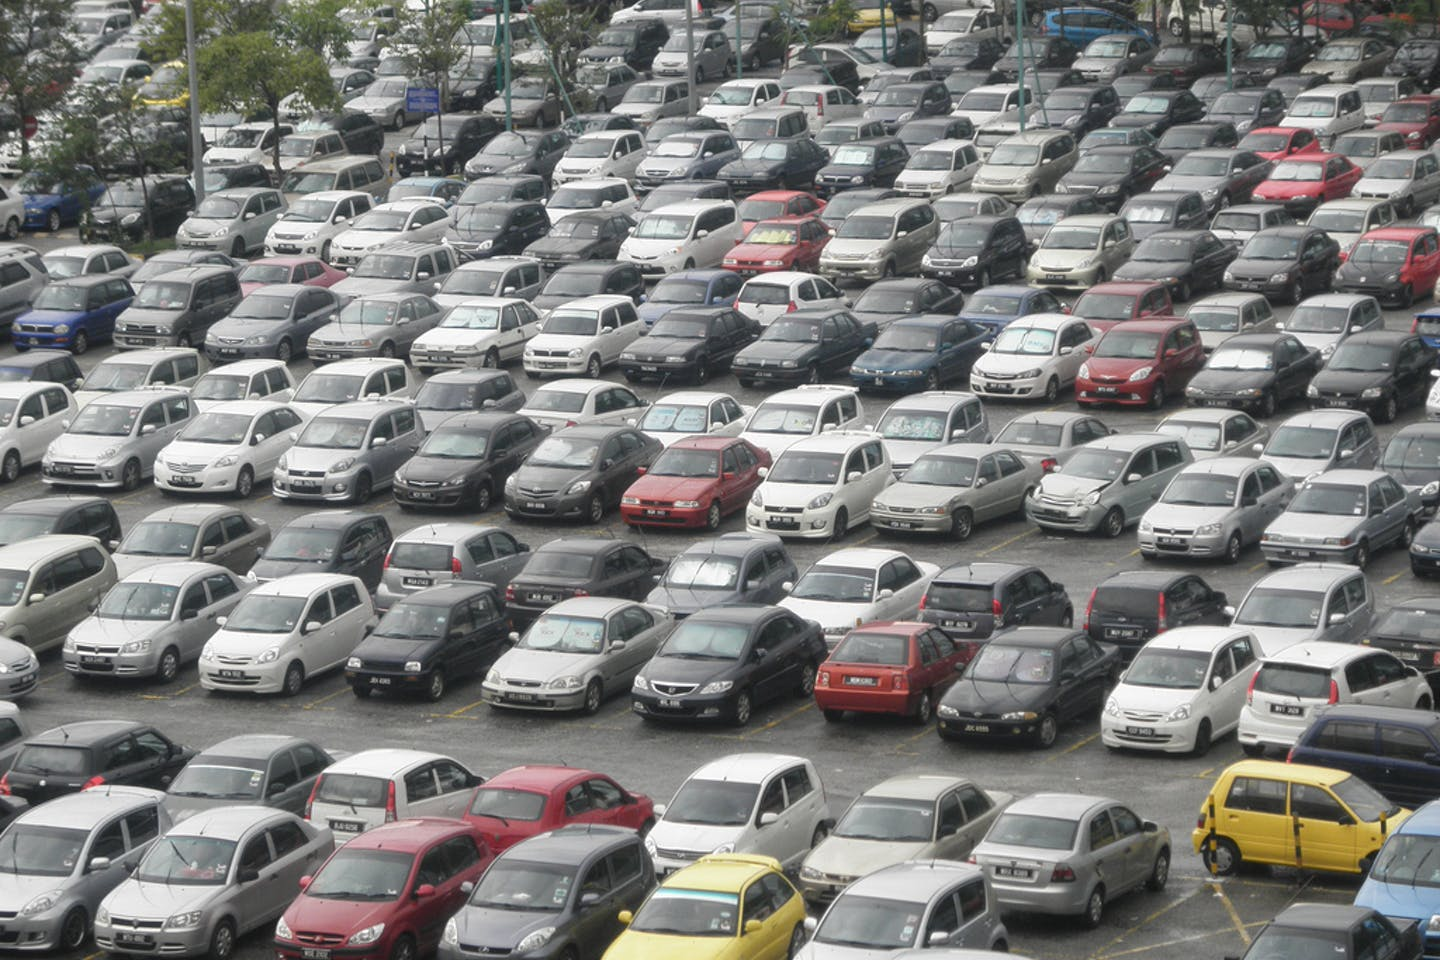 Cars parked in Kuala Lumpur